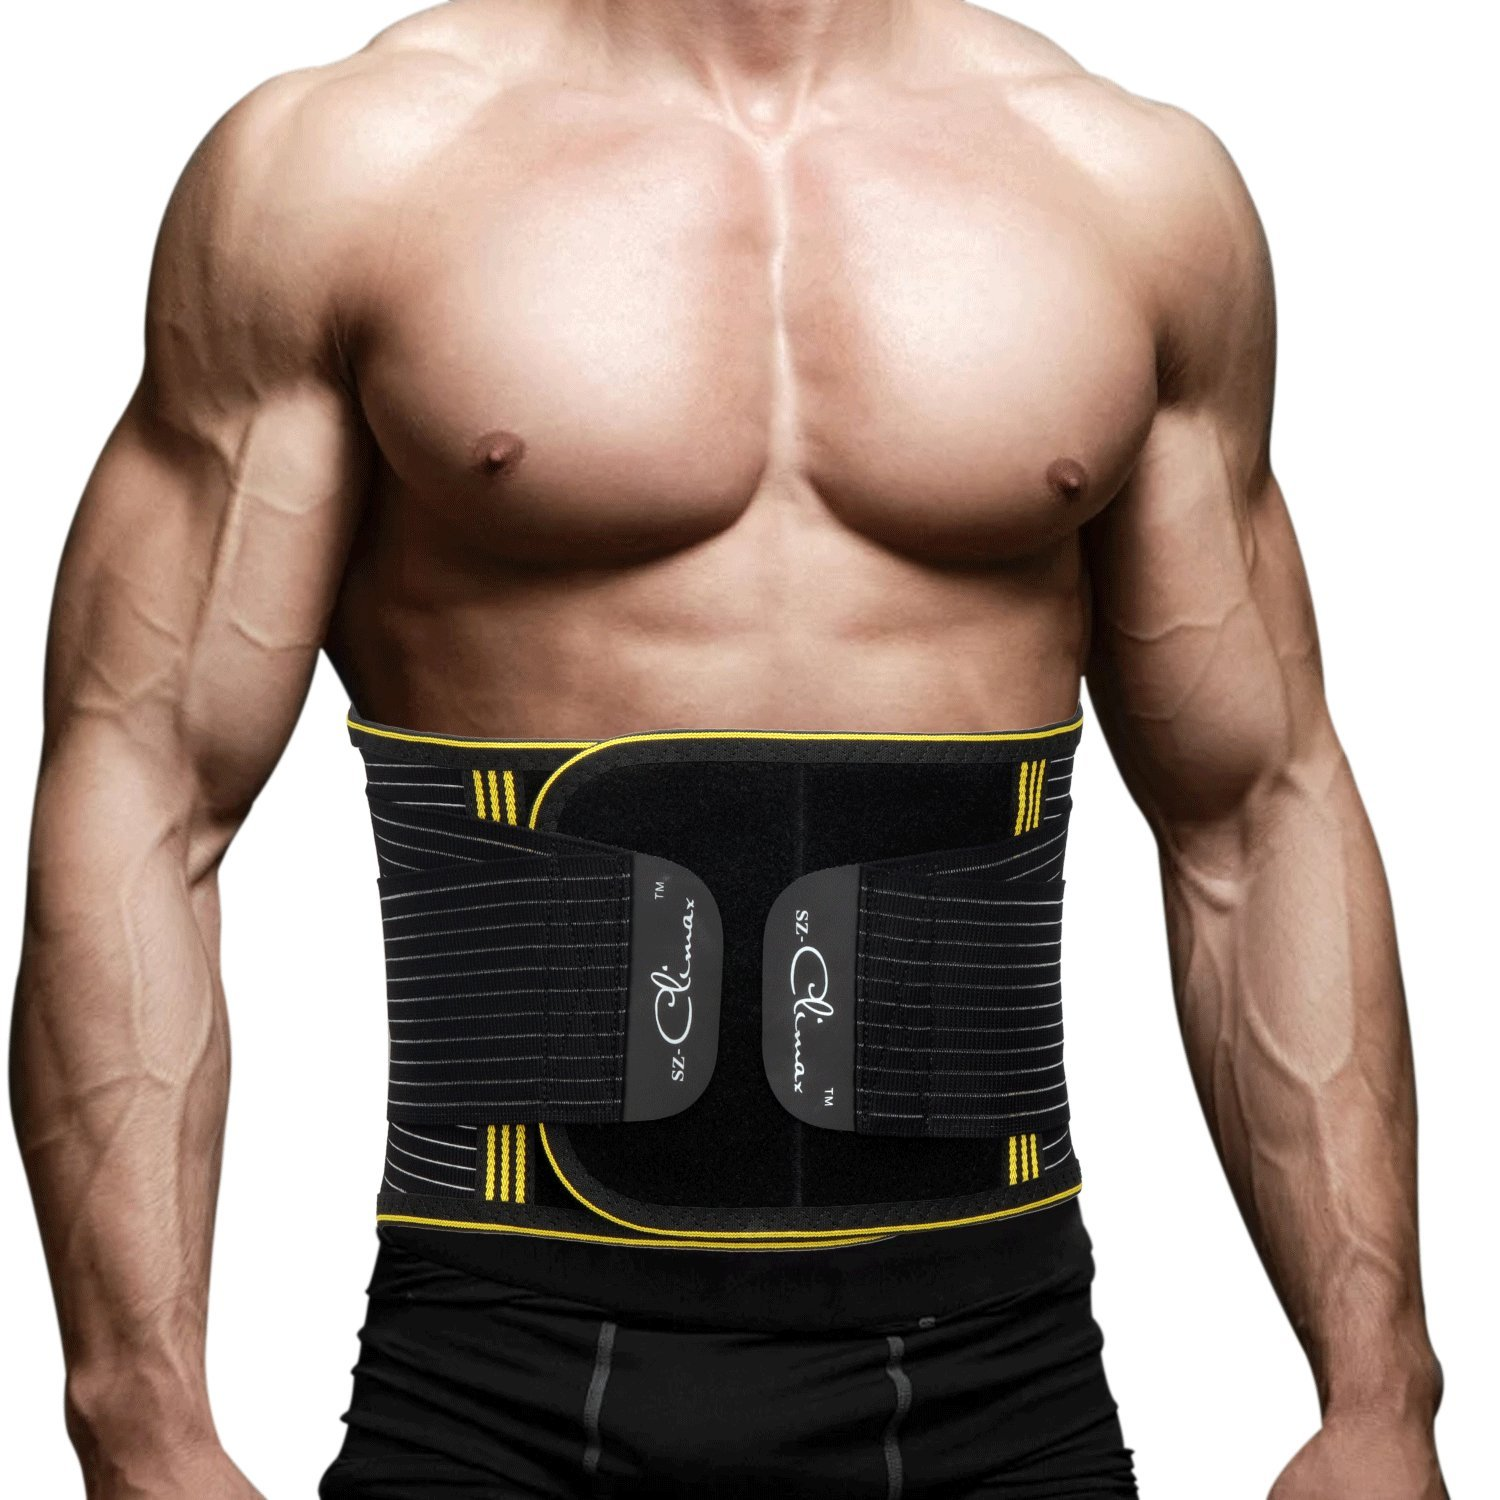 SZ-Climax Lumbar Support Back Braces Belt, Waist Trainer for Men & Women DD1-B105